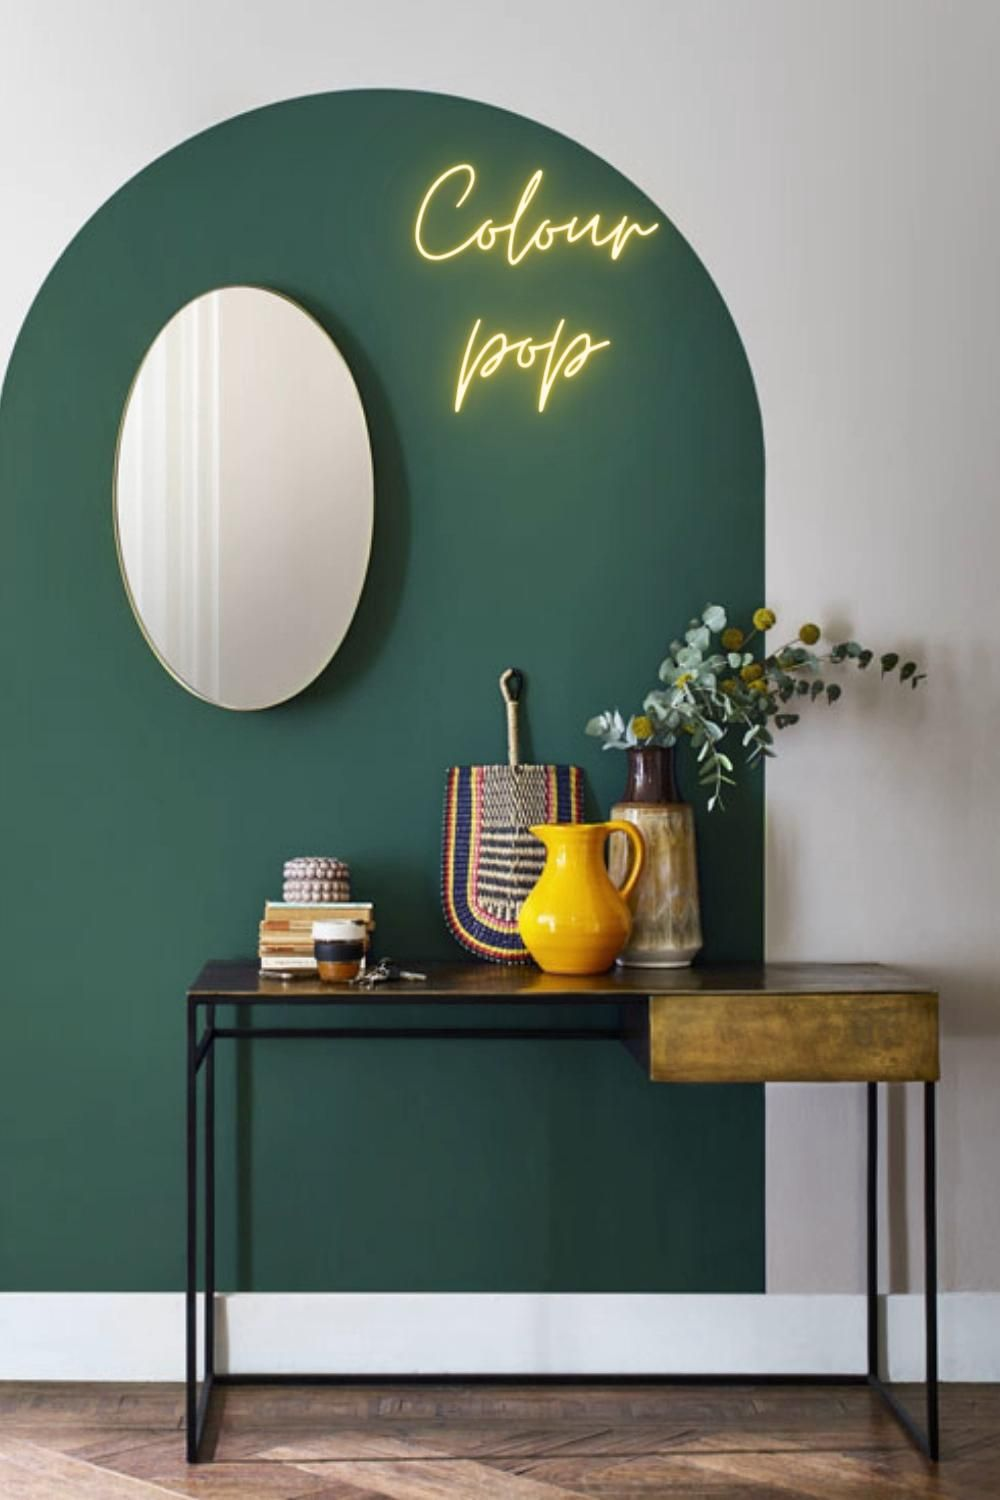 Want to bring a bit of colour into your home, but not sure where to start?